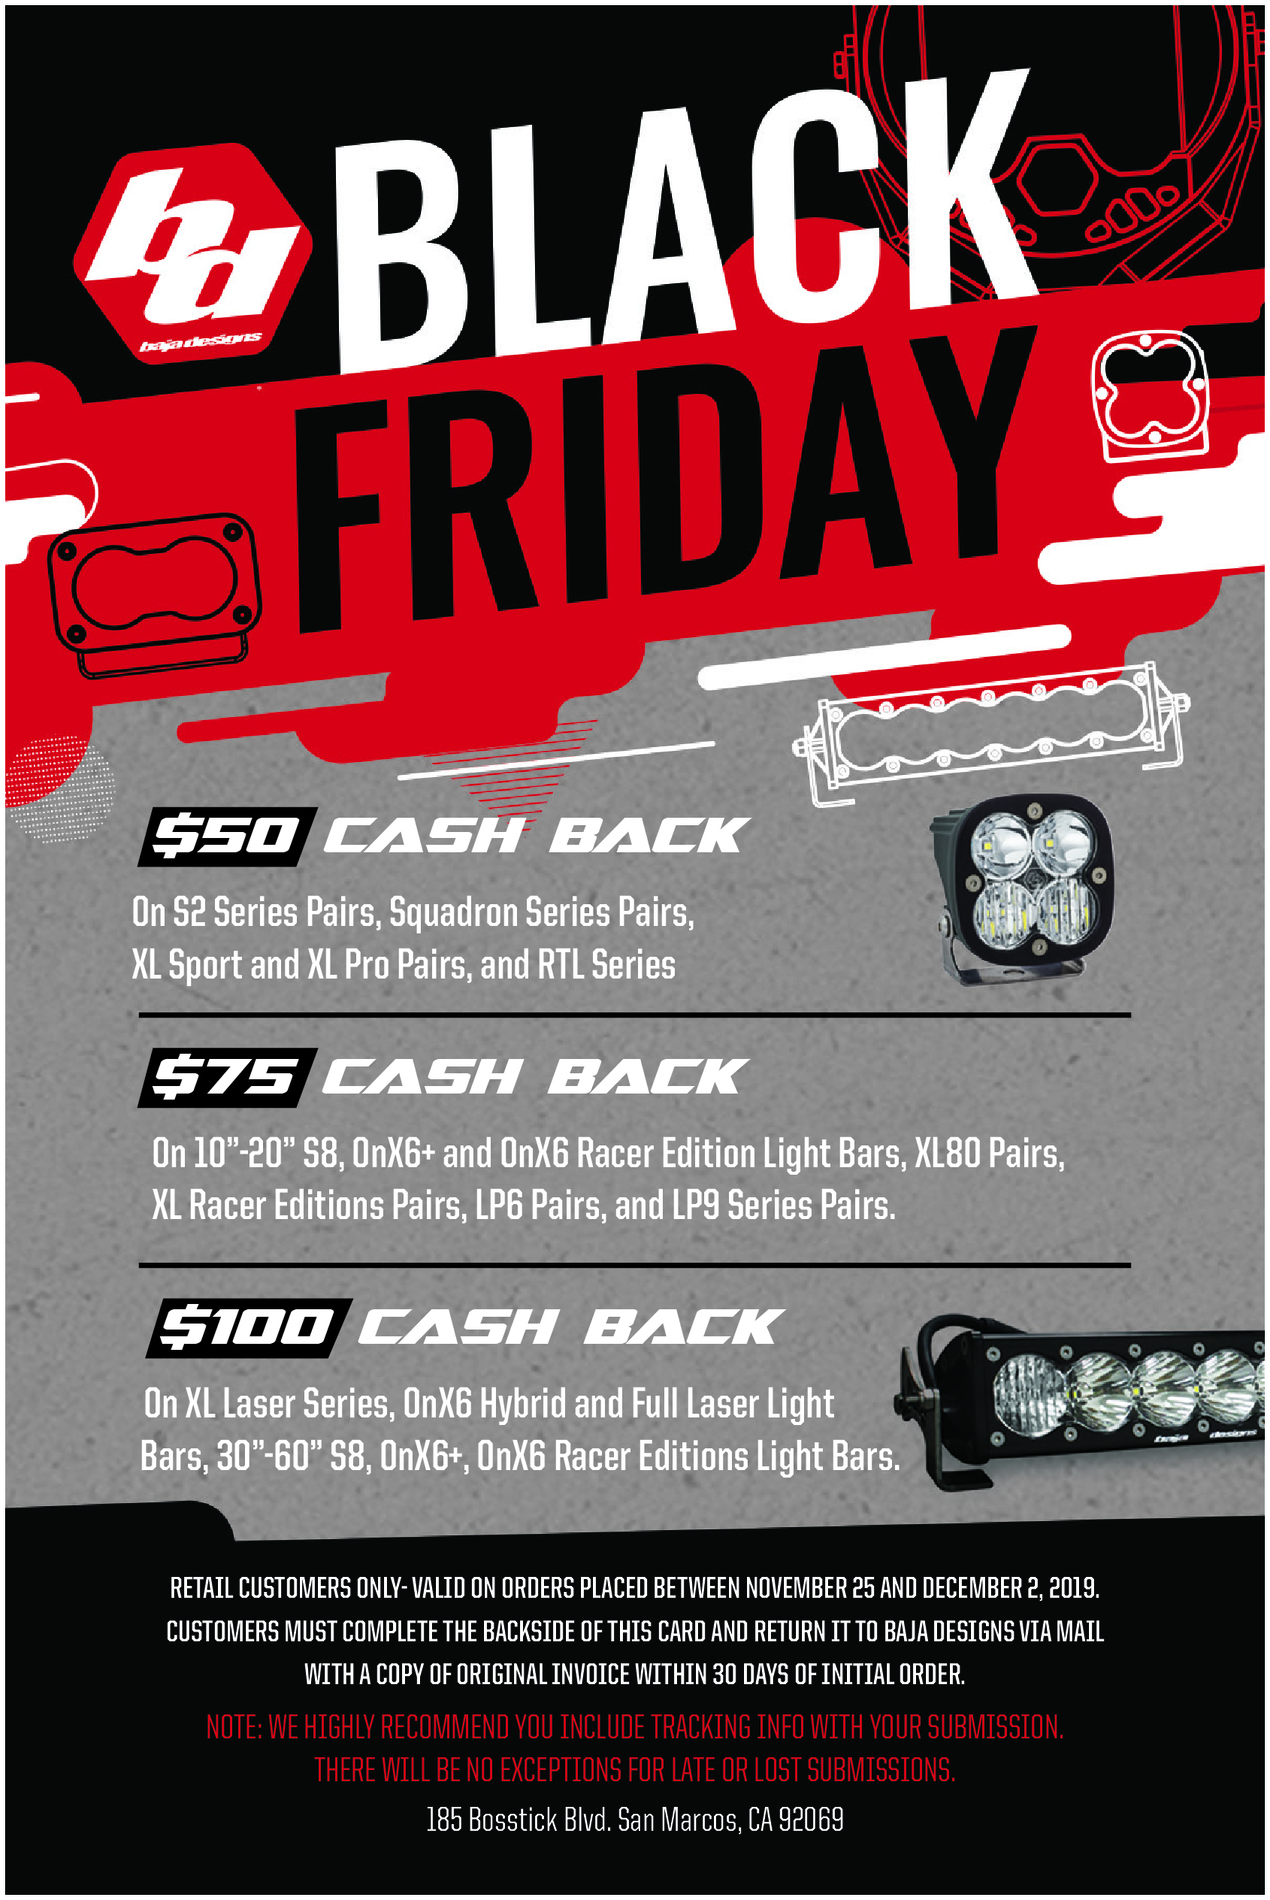 BD-BlackFriday2019-4x6-Rebate%20Card%20Email.jpg